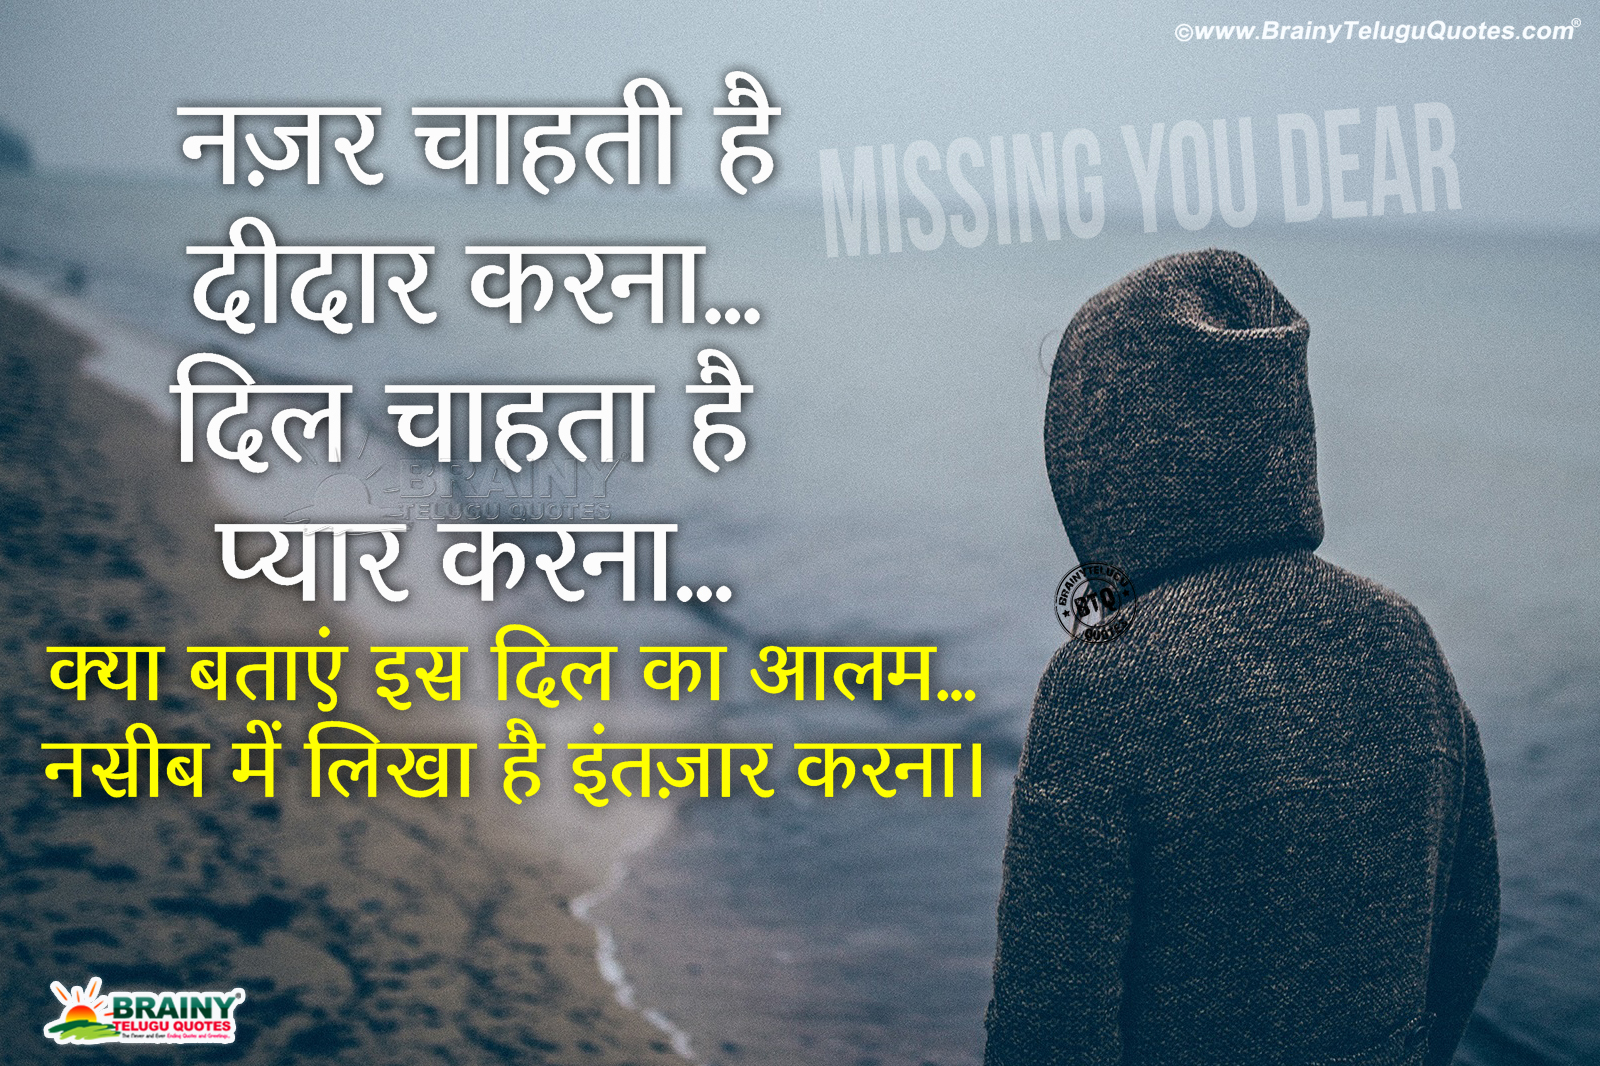 Love Image With Quotes In Hindi | Wallpapersimages.org |Sad Alone Quotes In Hindi